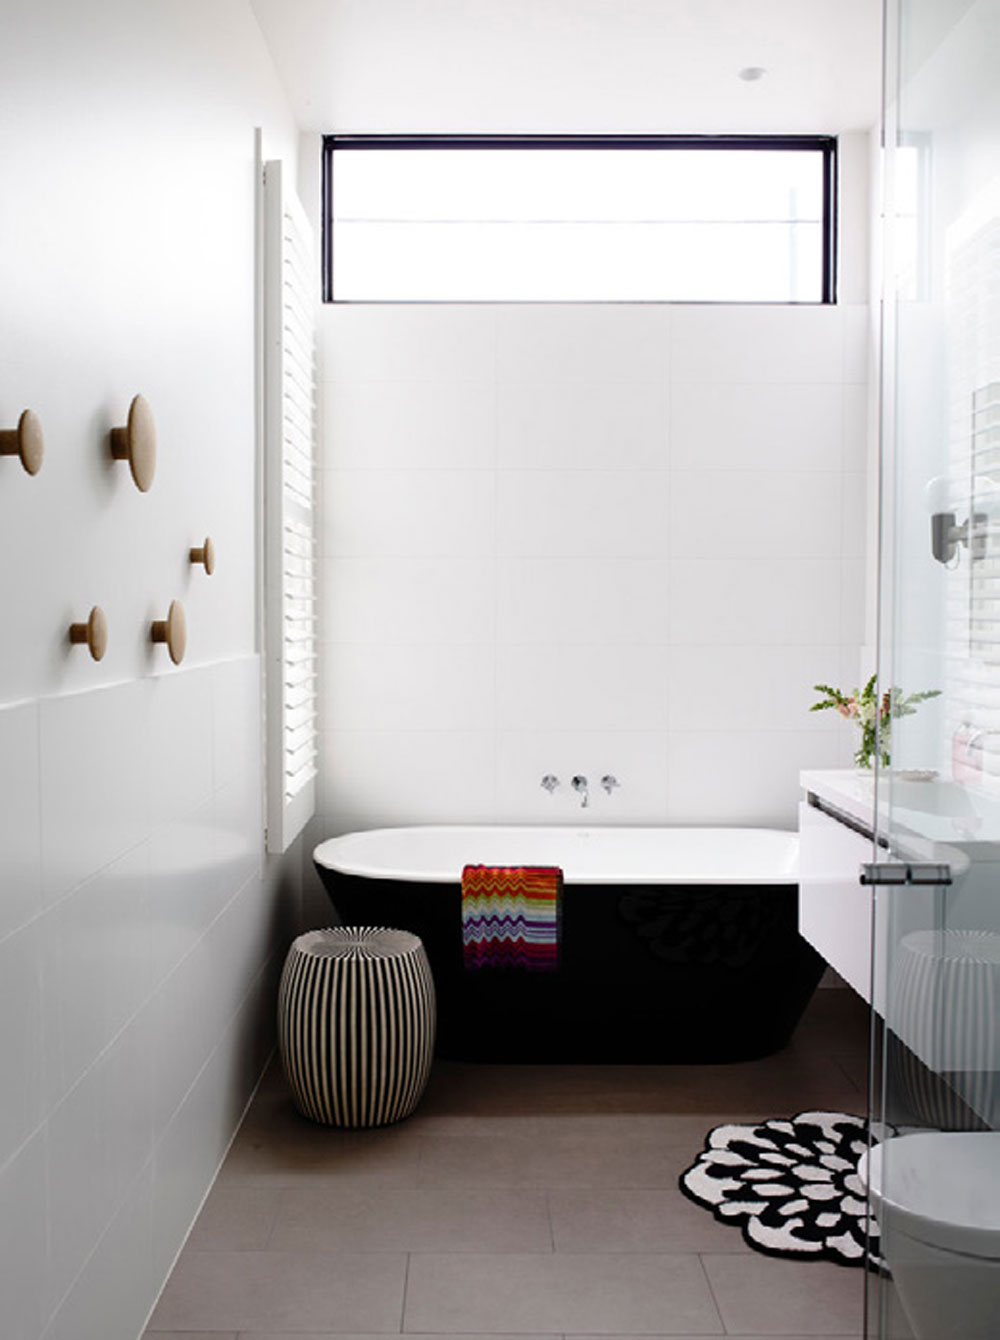 Designing A Small Bathroom Ideas And Tips - Bathroom interior ideas and tips